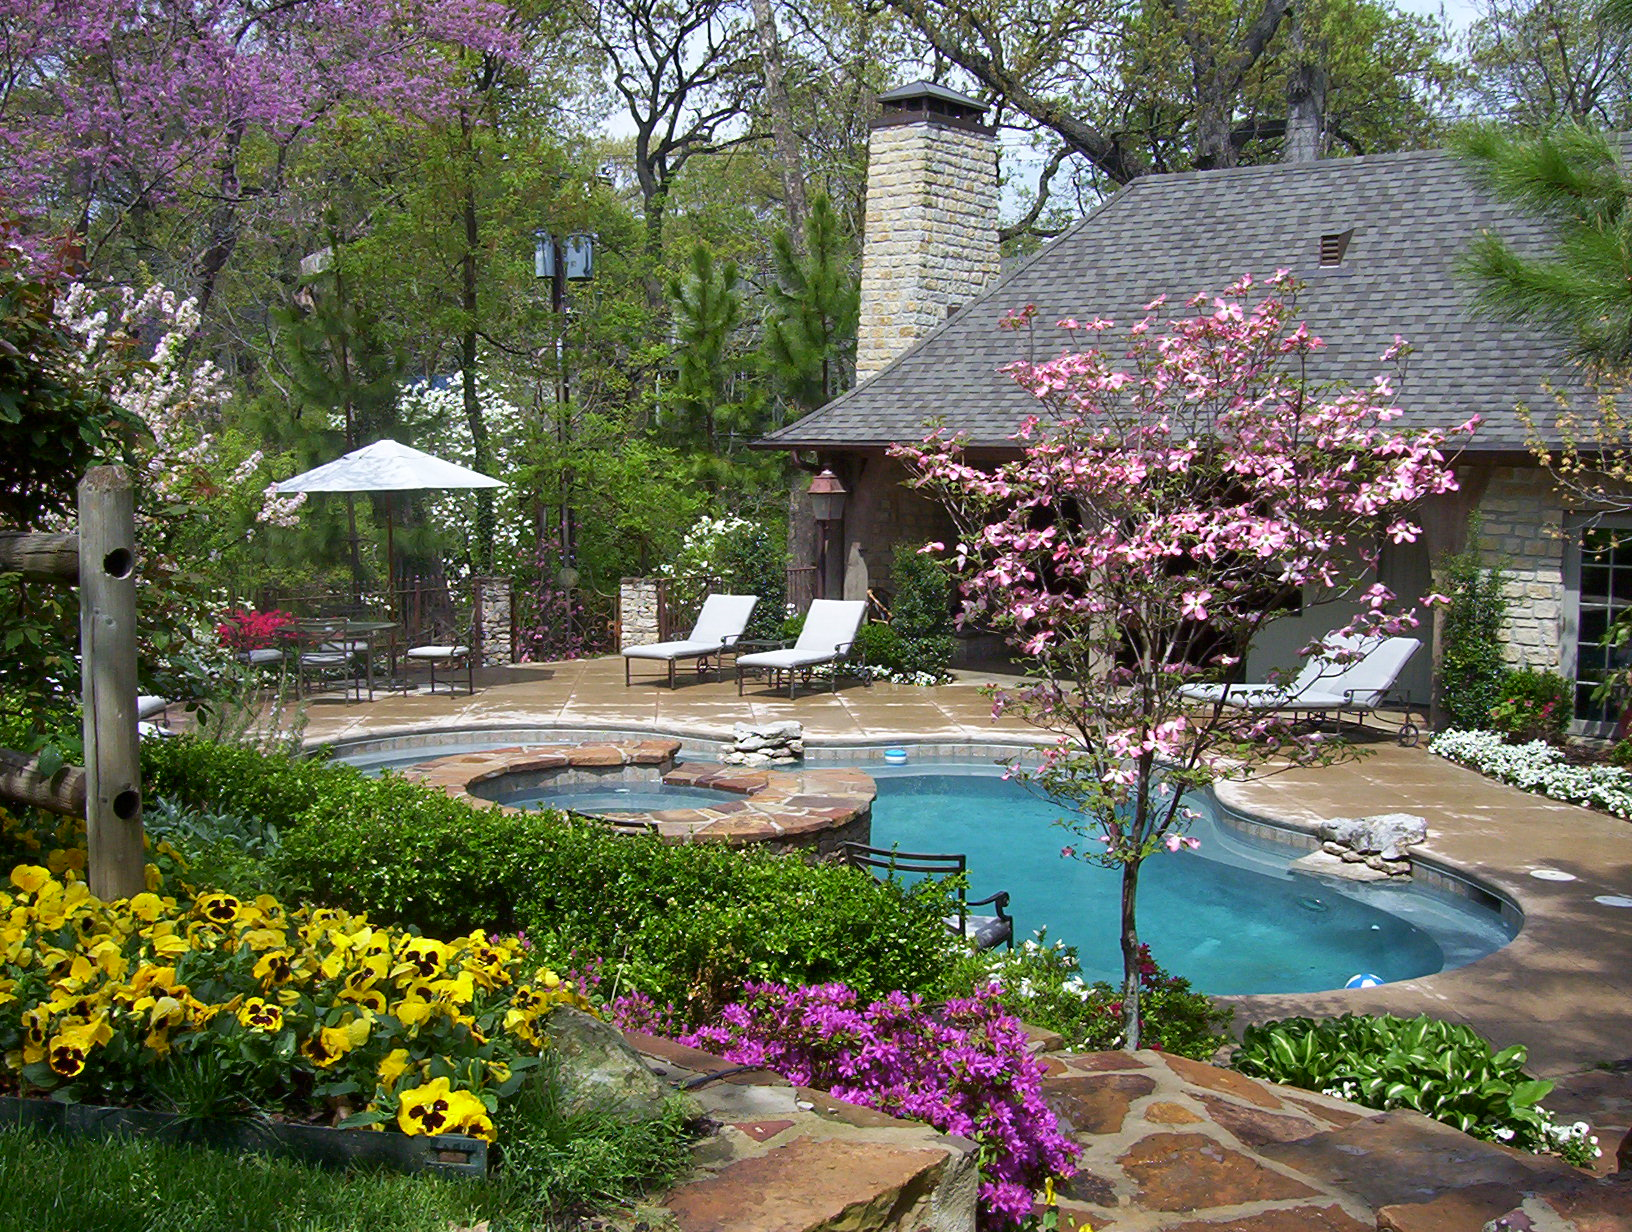 Colorful Backyard With Pool